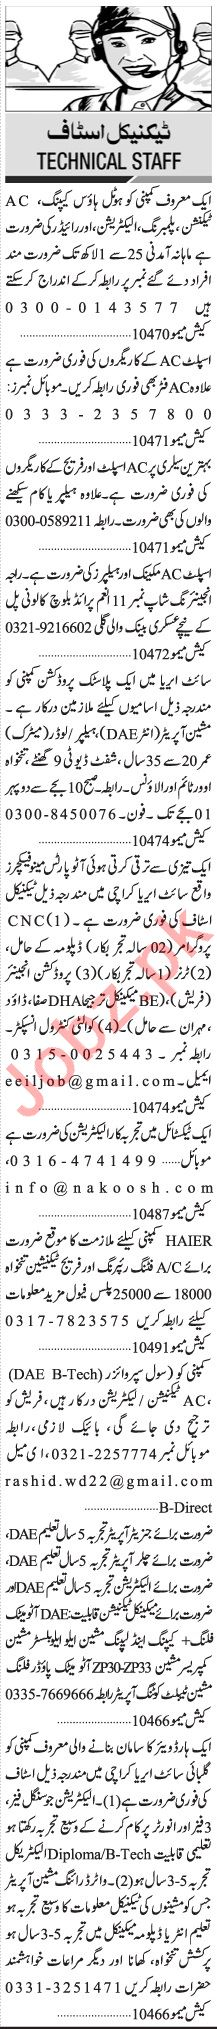 Jang Sunday Classified Ads 2 May 2021 for Technical Staff